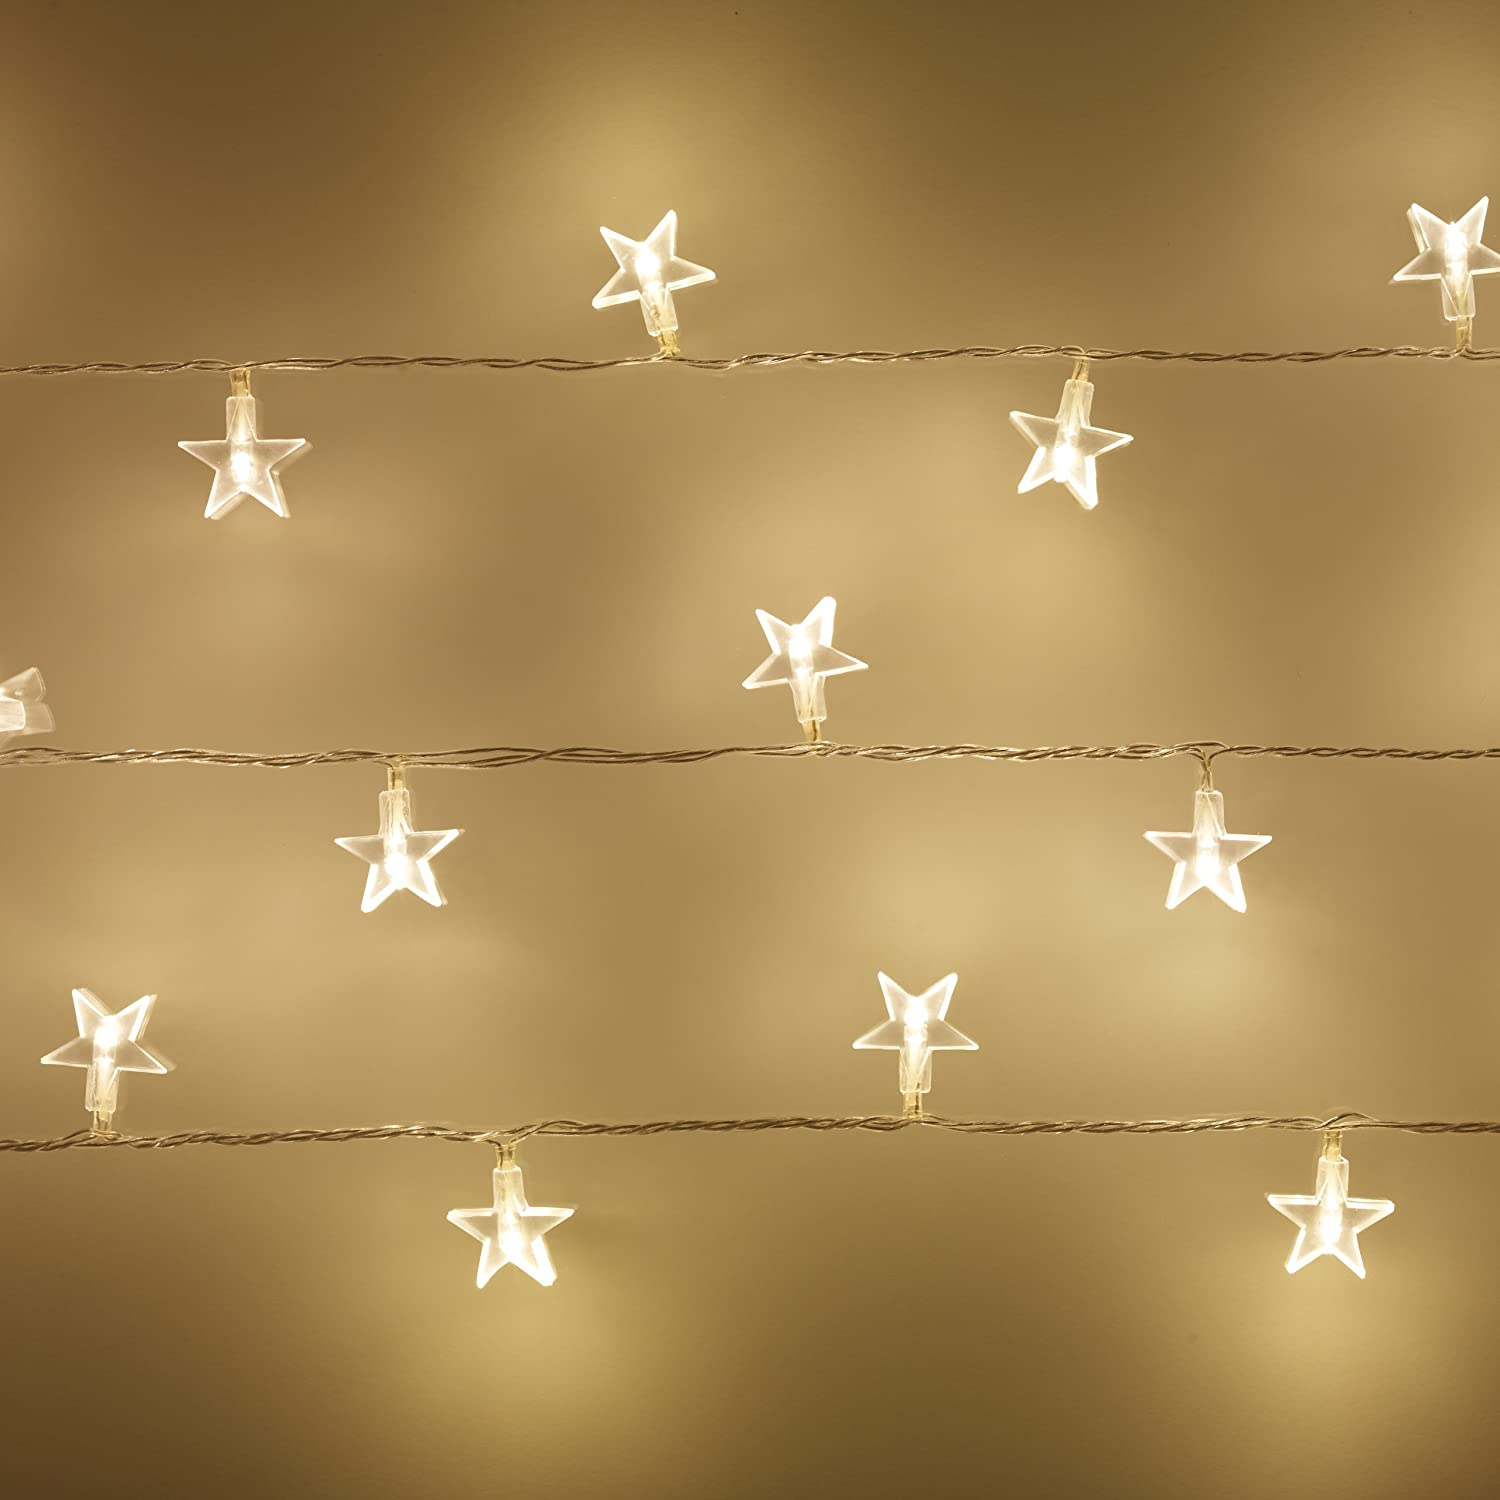 Bedroom ceiling lights stars - Indoor Star Fairy Lights With 30 Warm White Leds By Lights4fun Amazon Co Uk Kitchen Home